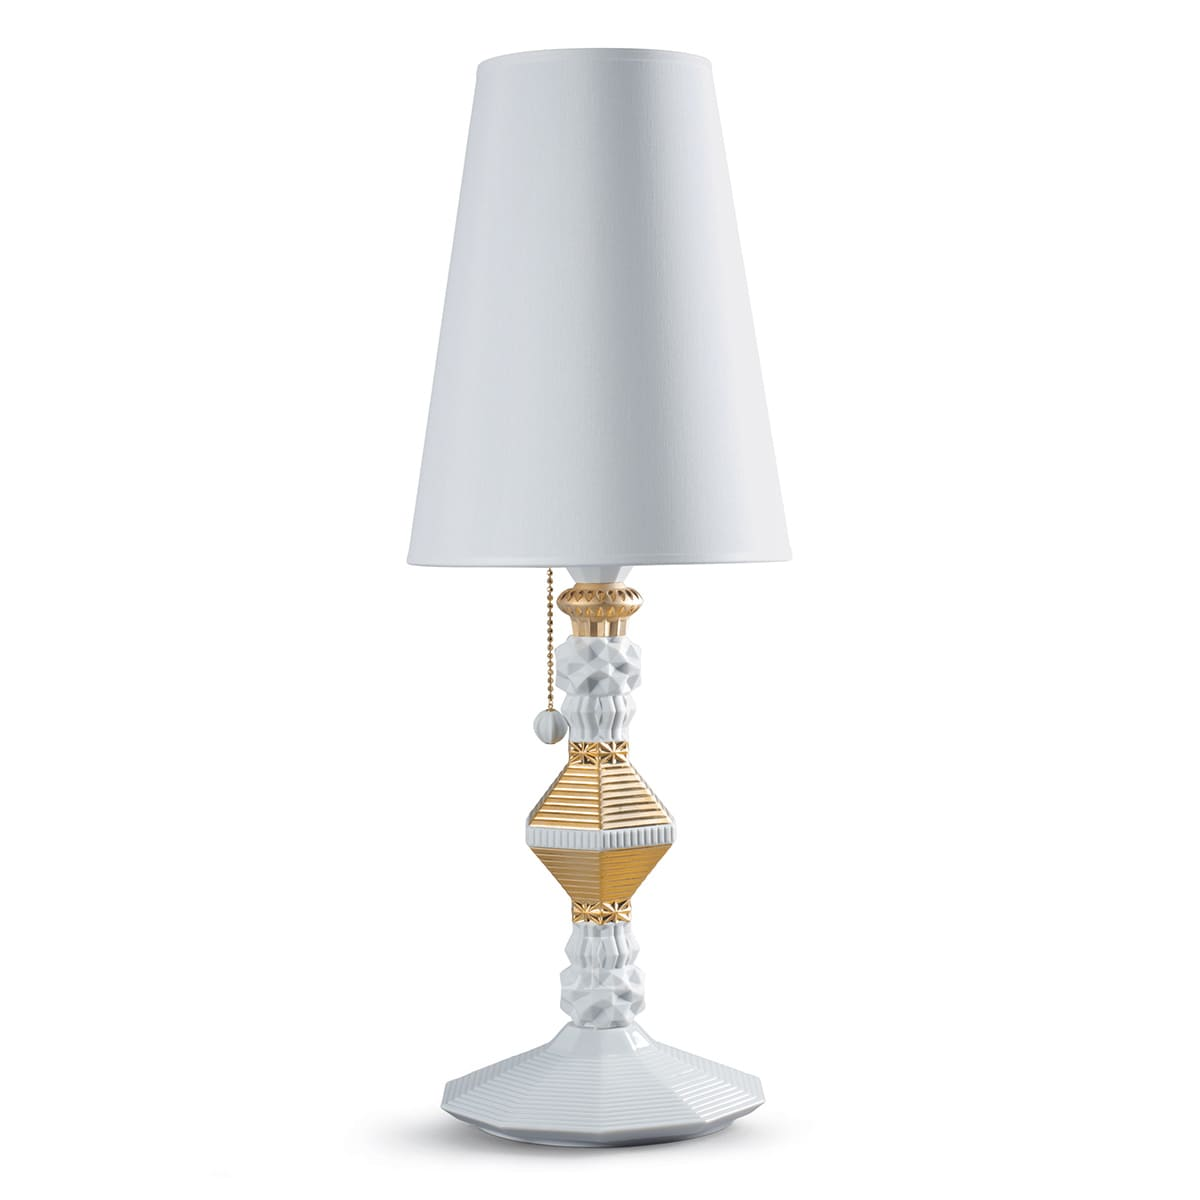 lladro belle de nuit table lamp golden luster spanish designer